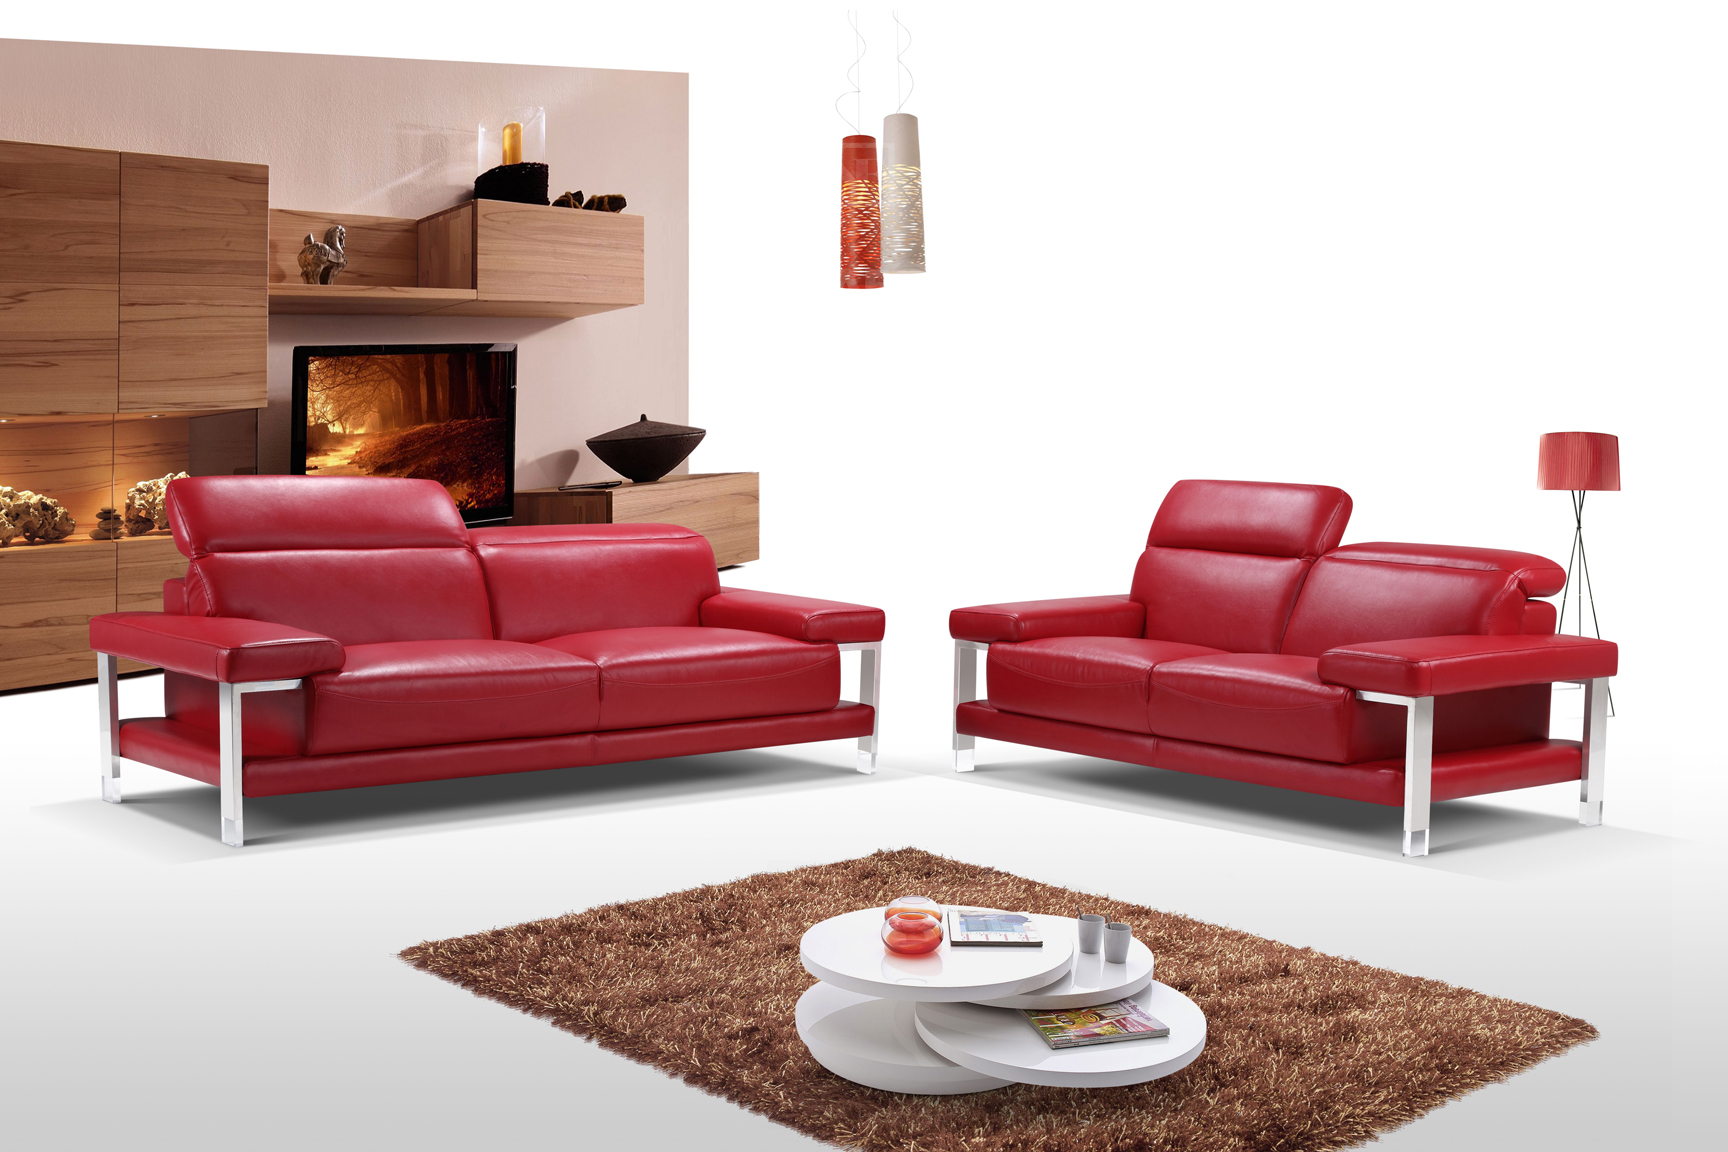 Astounding Red Living Room Set Pictures Inspirations Dievoon